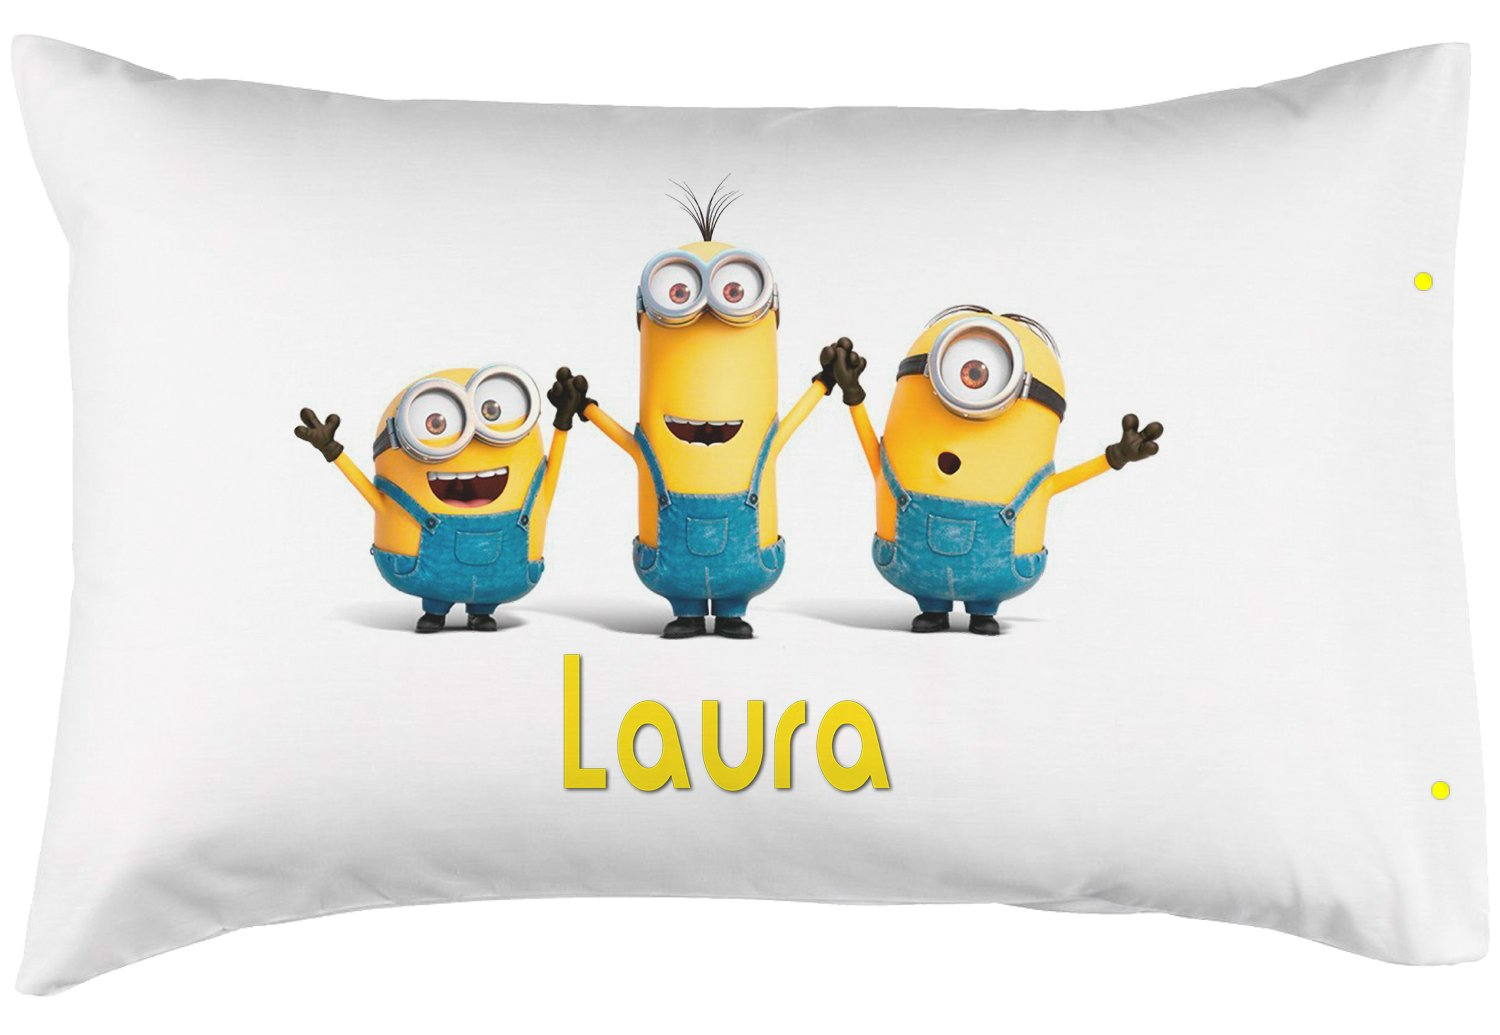 PersonalizedPillowcase Children's Minions. Customized With Your Child's Name! - Perfect Custom Gift For Children Of All Ages! 100% Super Soft Microfiber! (Standard 20''X30'')